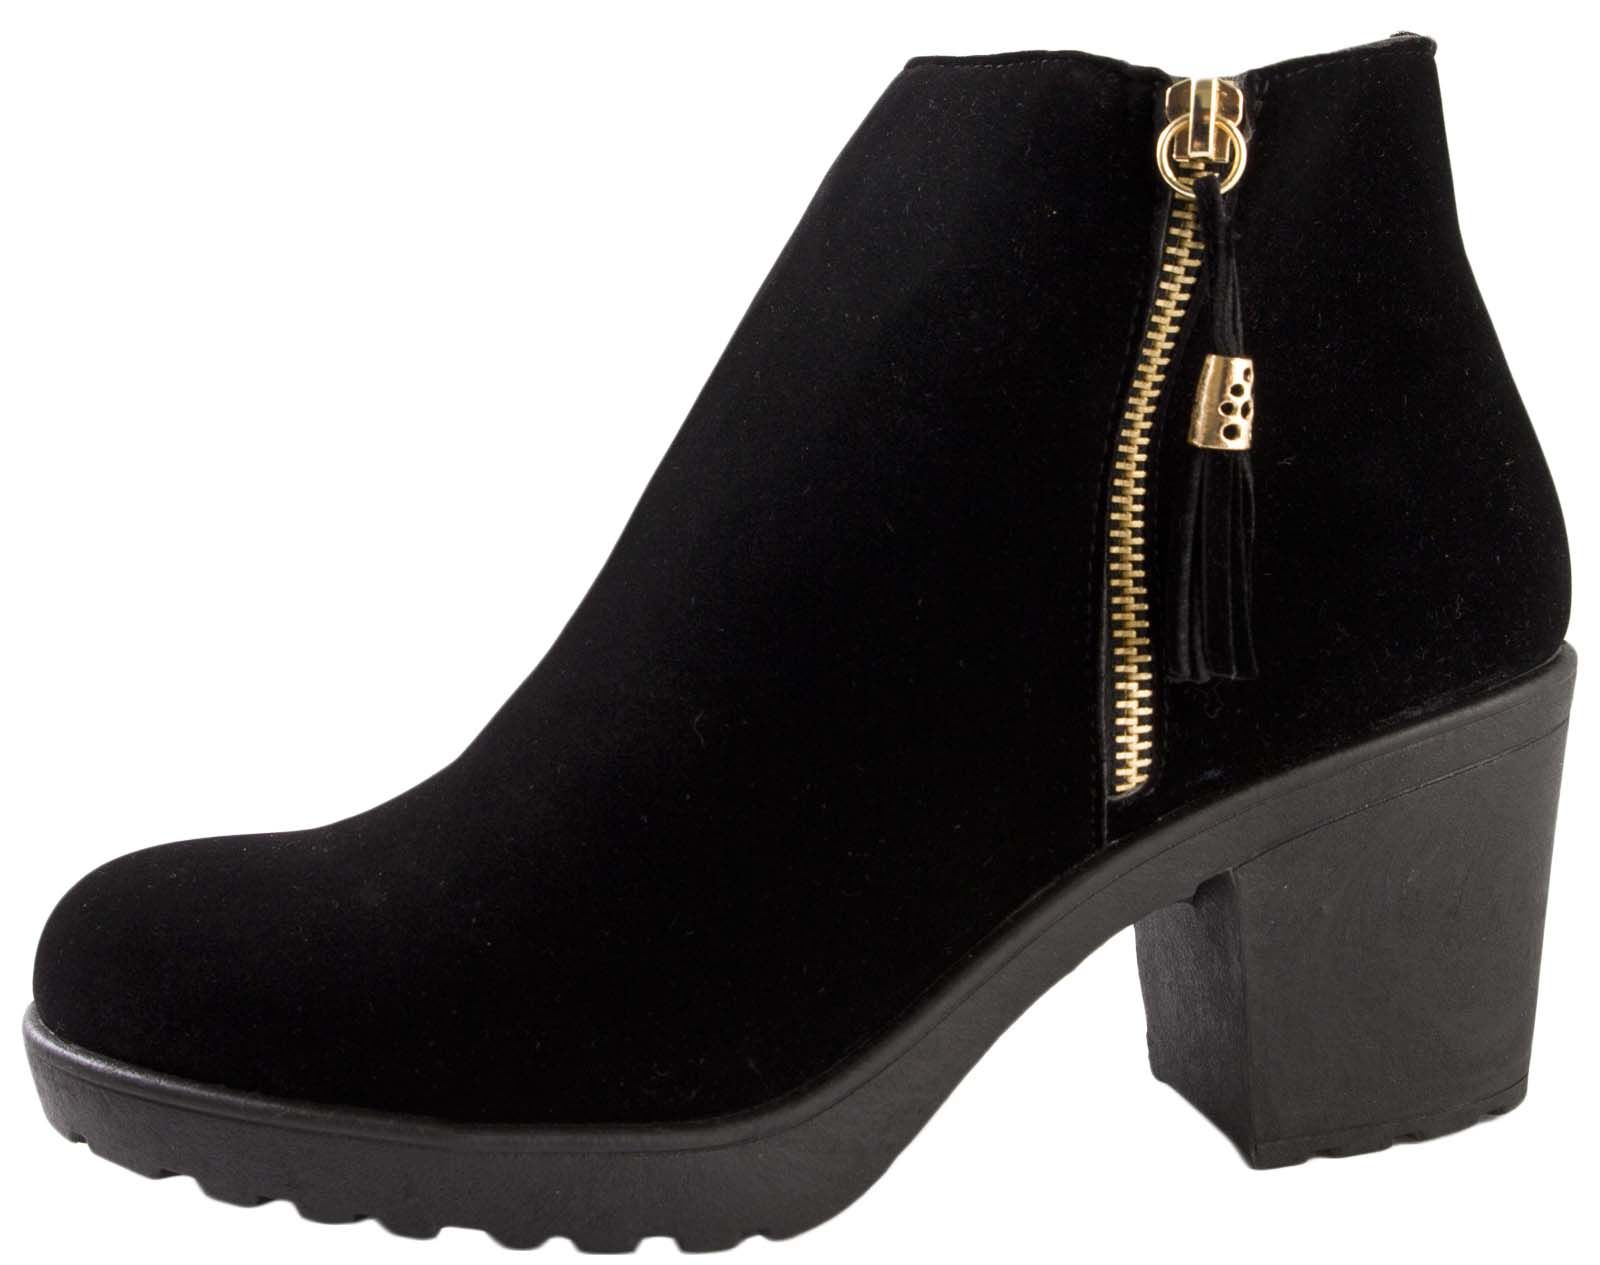 c14eb136adcf Womens Chelsea Ankle Boots With Tassels Faux Leather Chunky Block ...